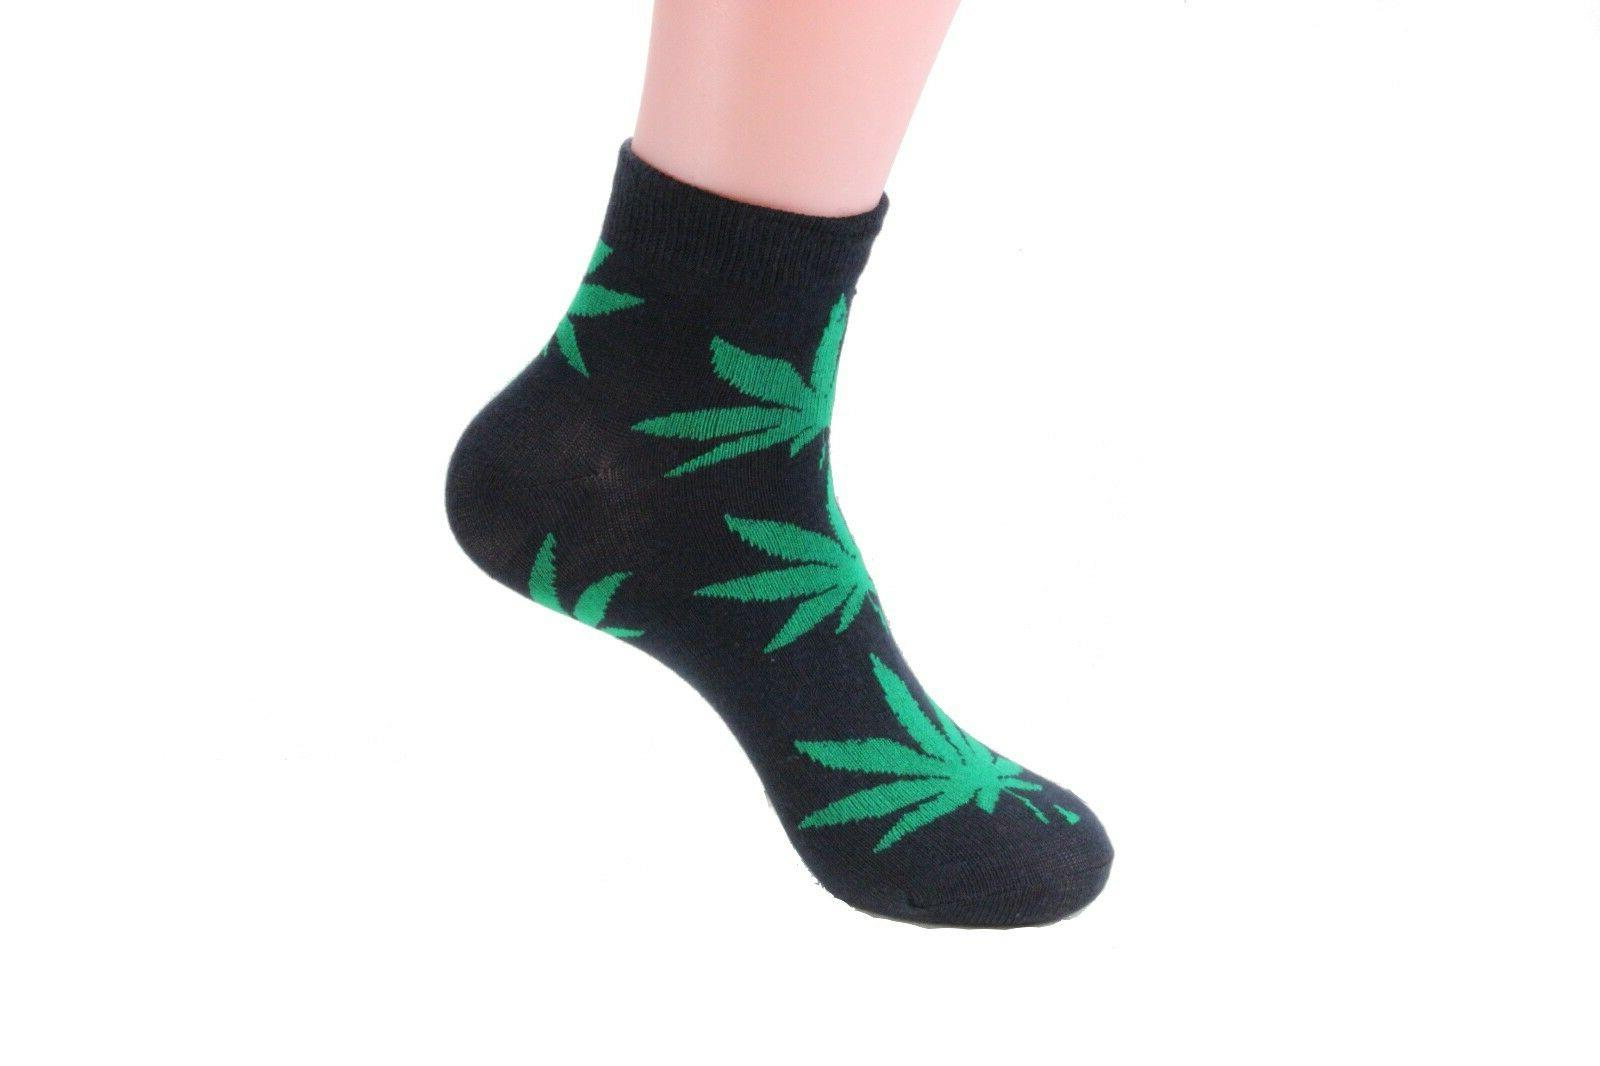 Lot 6-12 Womens Leaf Weed Marijuana Cotton Ankle Cut